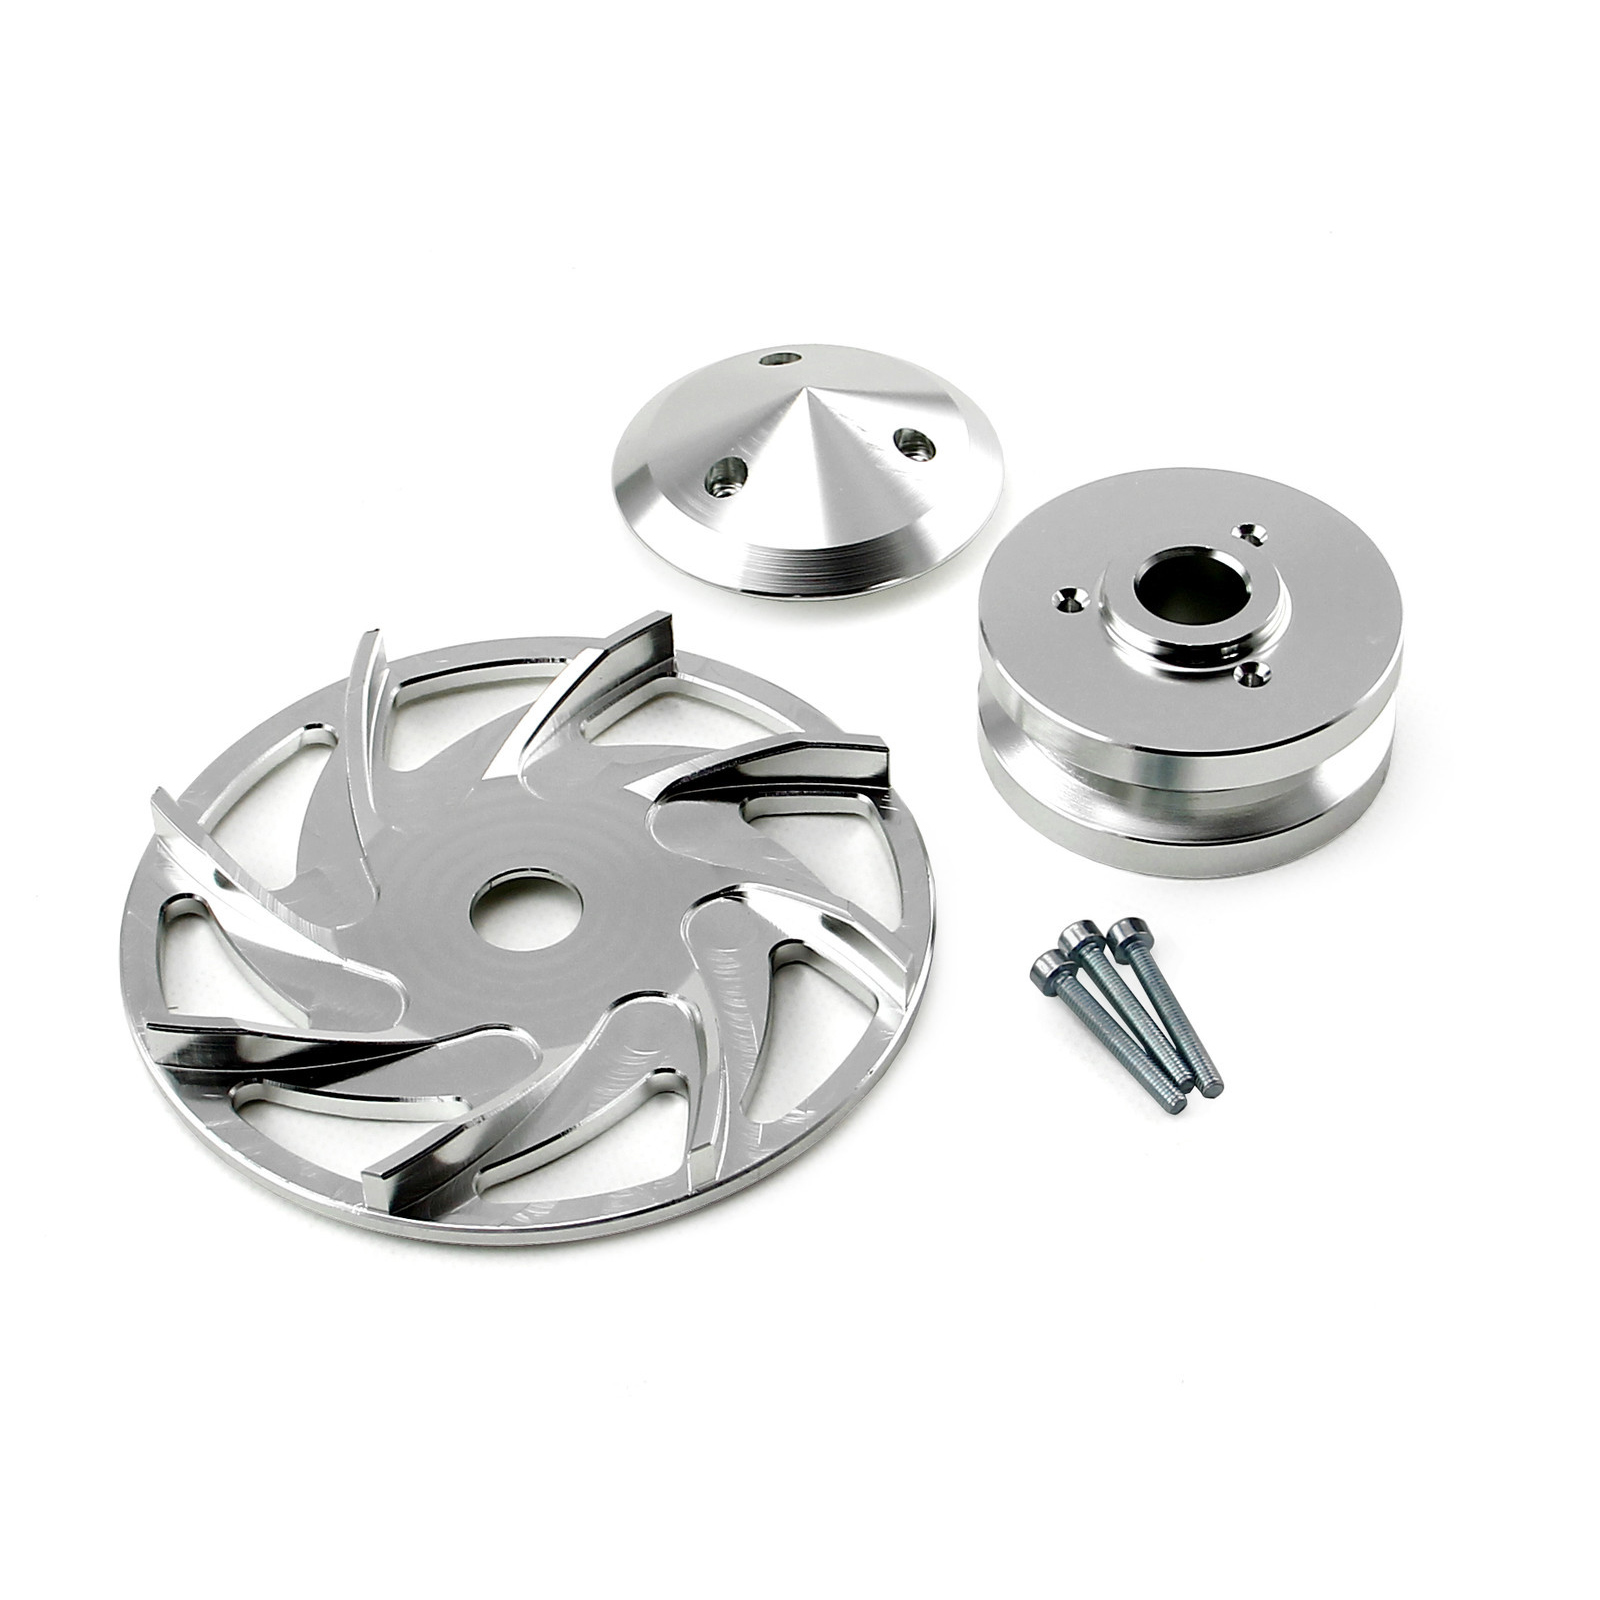 Universal Chevy Ford Single V Groove Silver Billet Alternator Pulley and Fan Kit